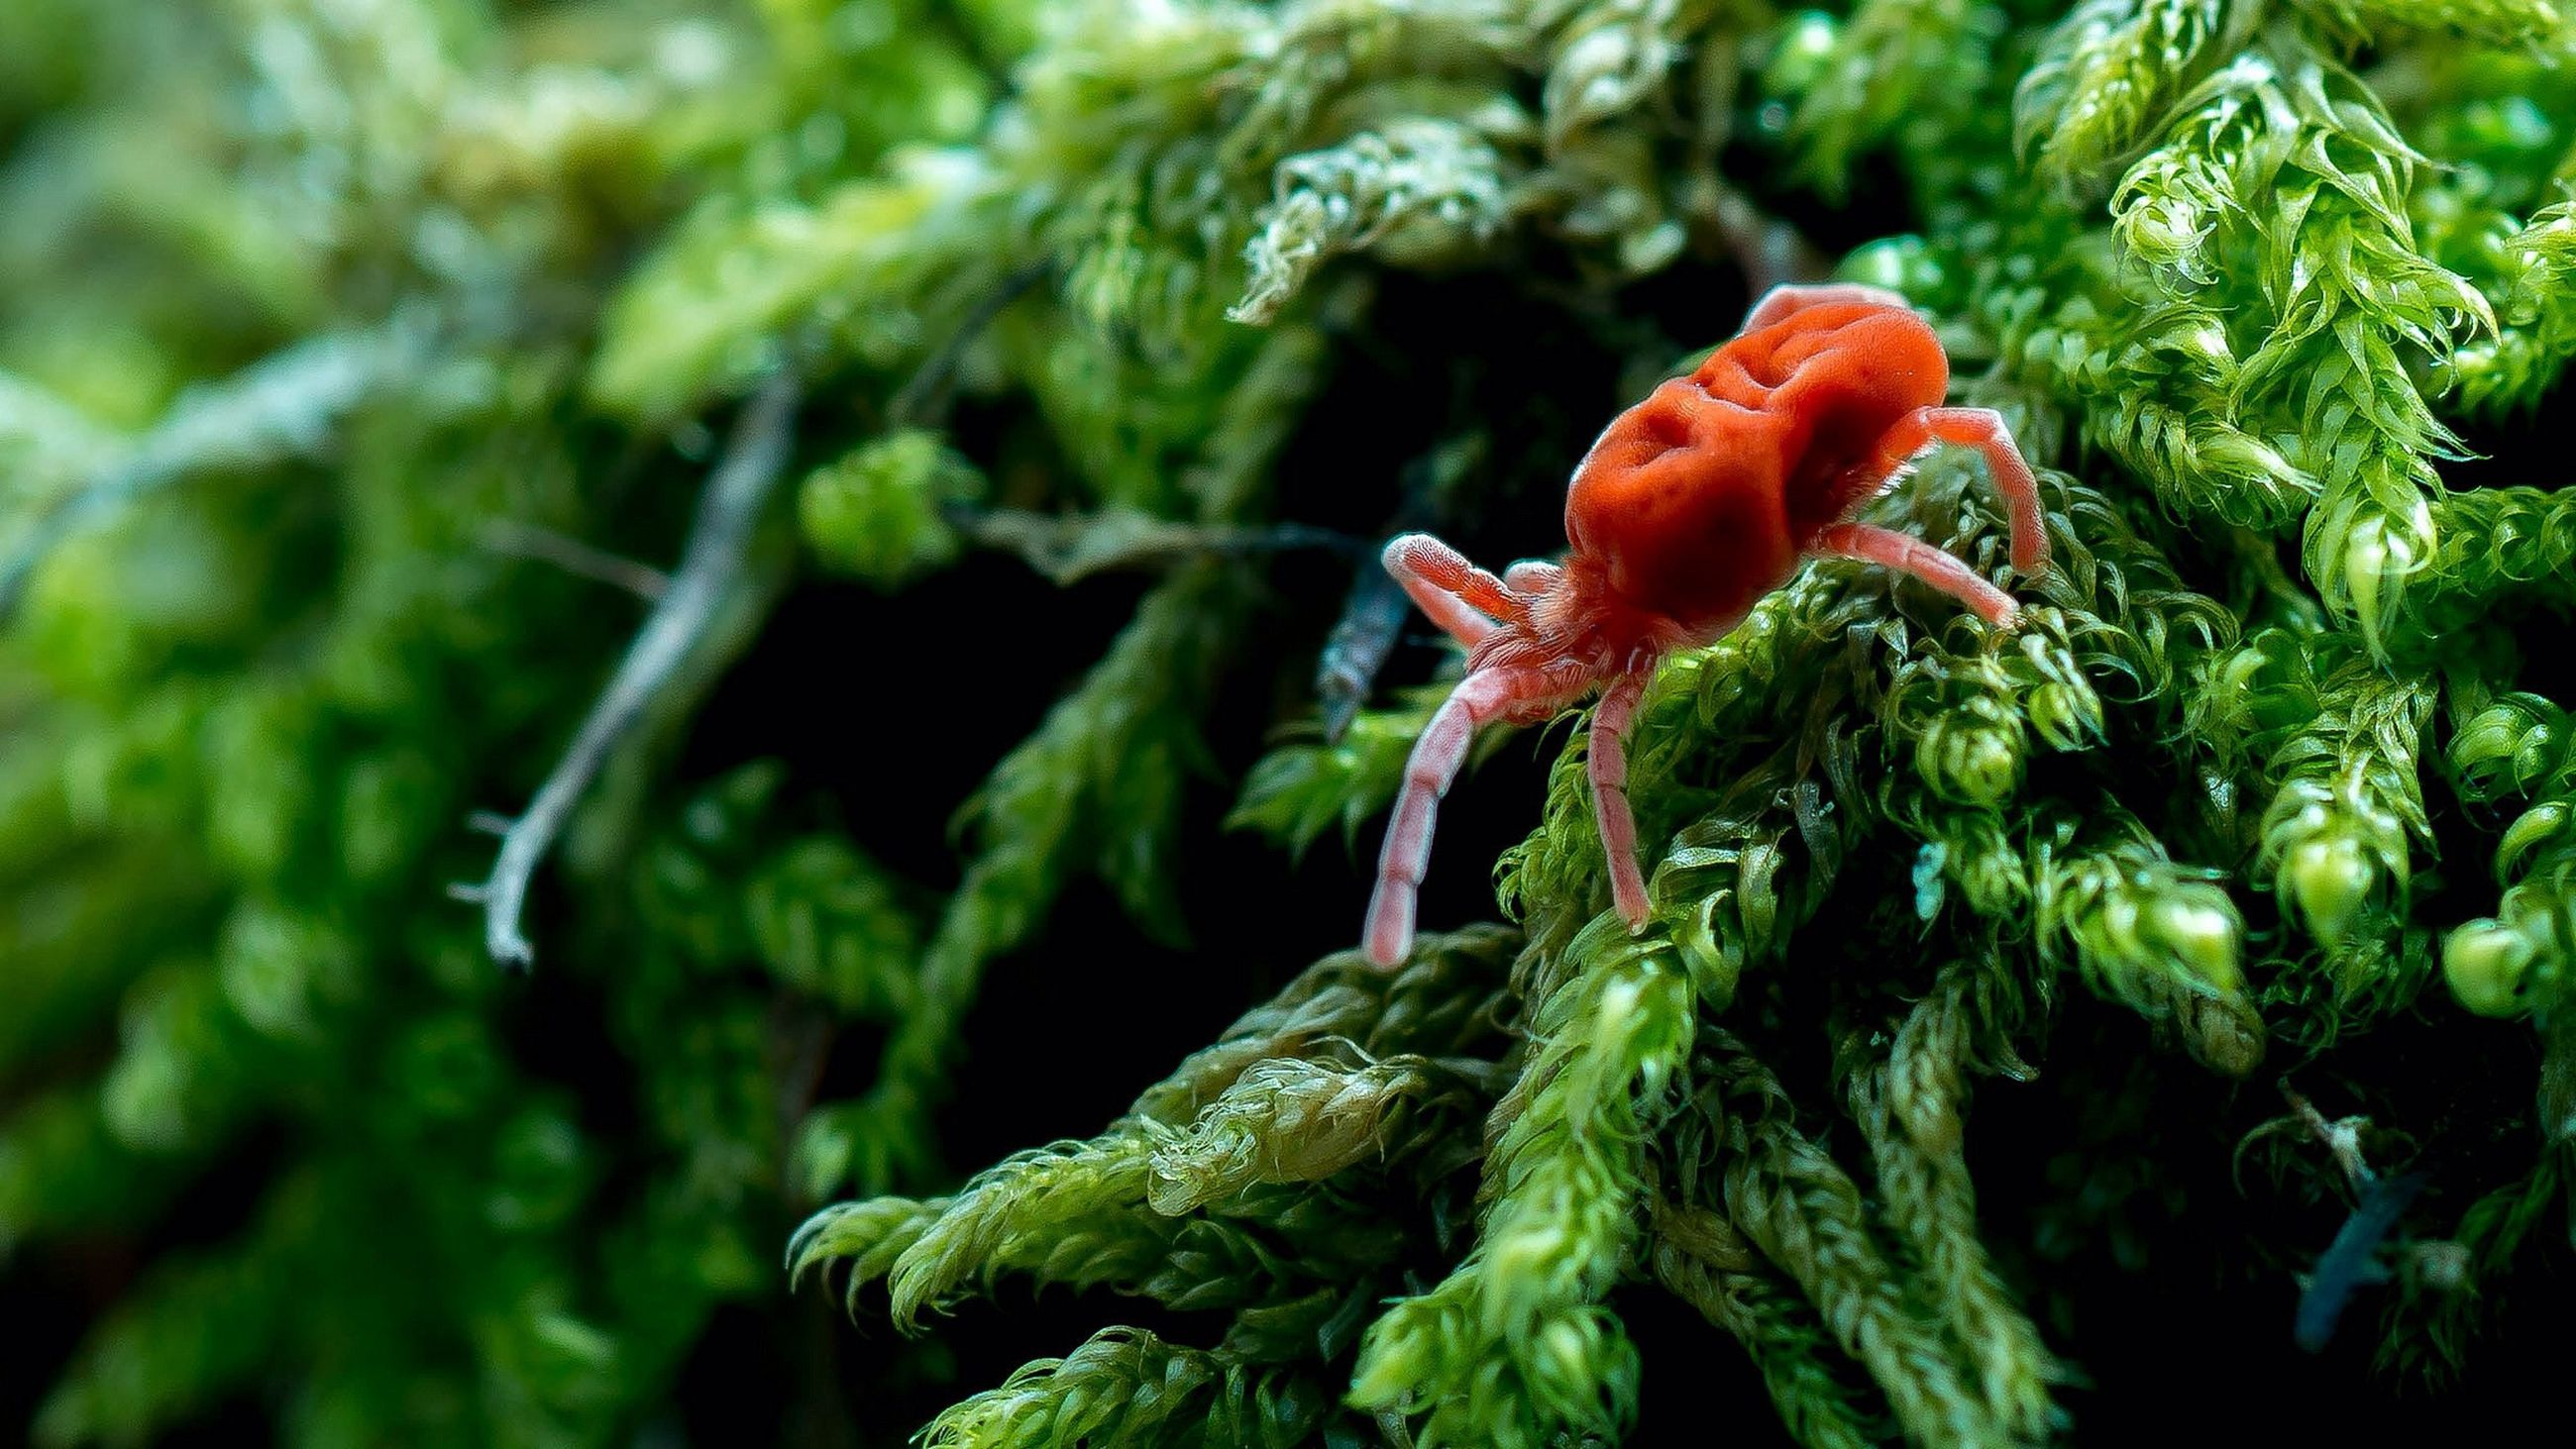 growth, freshness, close-up, plant, nature, focus on foreground, beauty in nature, green color, flower, leaf, red, fragility, growing, day, selective focus, outdoors, bud, no people, tree, stem